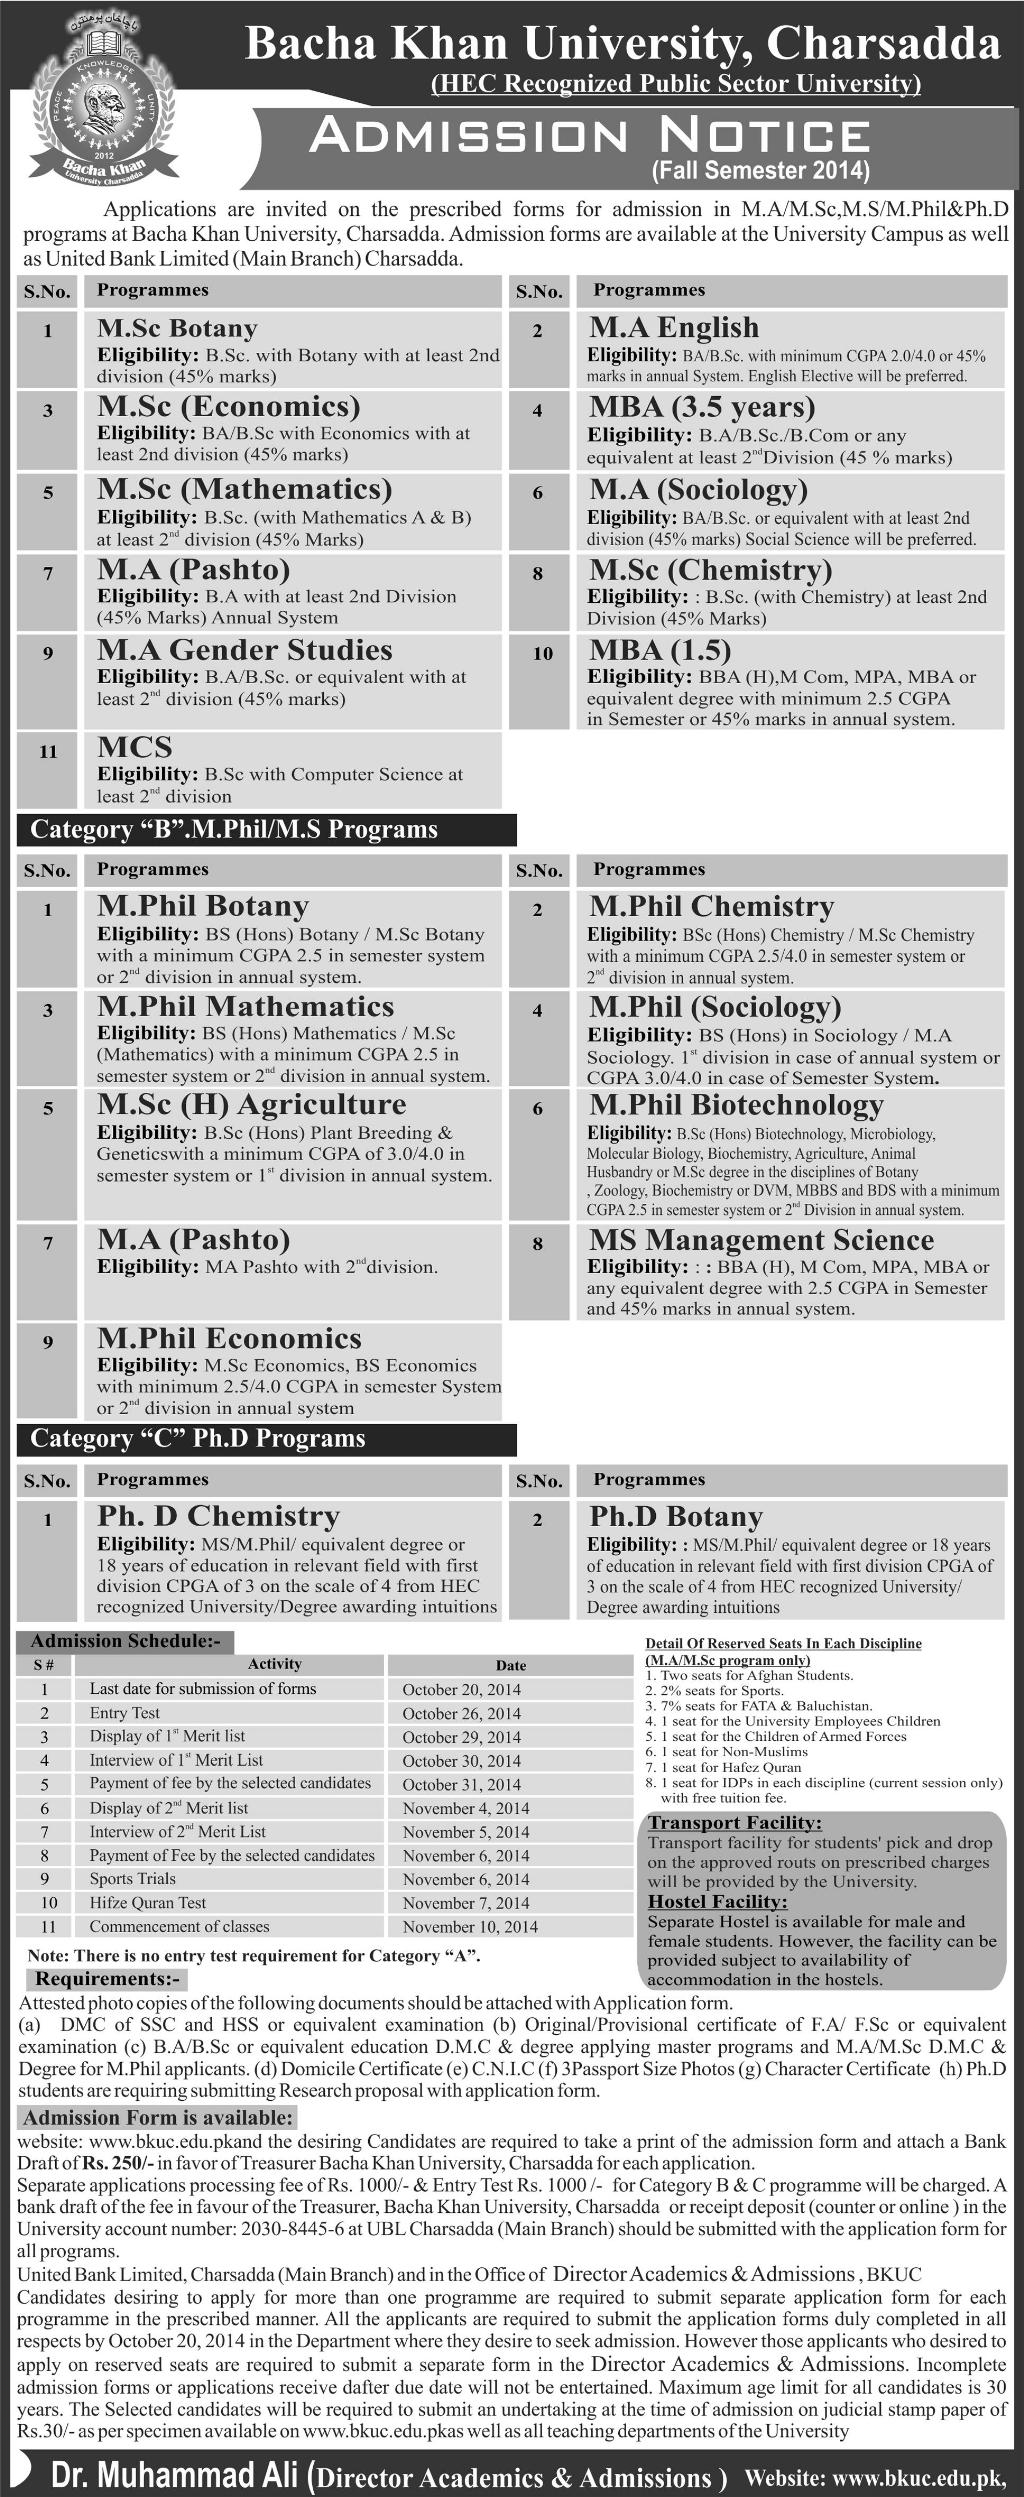 Bacha Khan University MSc, M.Phil, PhD Admissions 2015 Entry Test Result